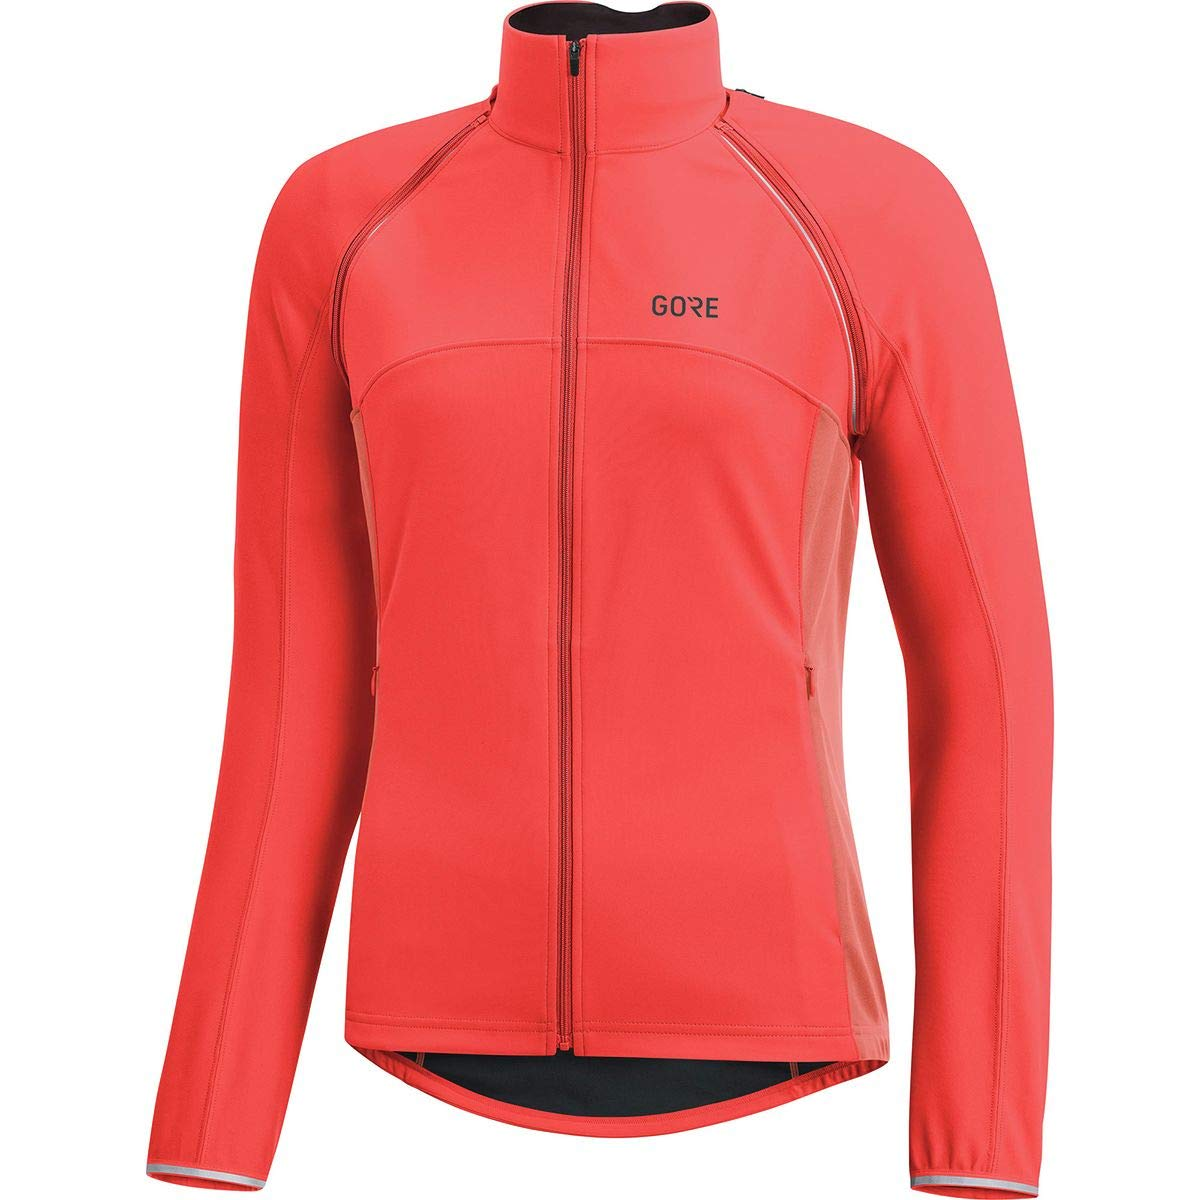 GORE Wear Women's Windproof Cycling Jacket, Removable Sleeves, GORE Wear C3 Women's GORE Wear WINDSTOPPER Phantom Zip-Off Jacket, Size: XL, Color: Lumi Orange/Coral Glow, 100191